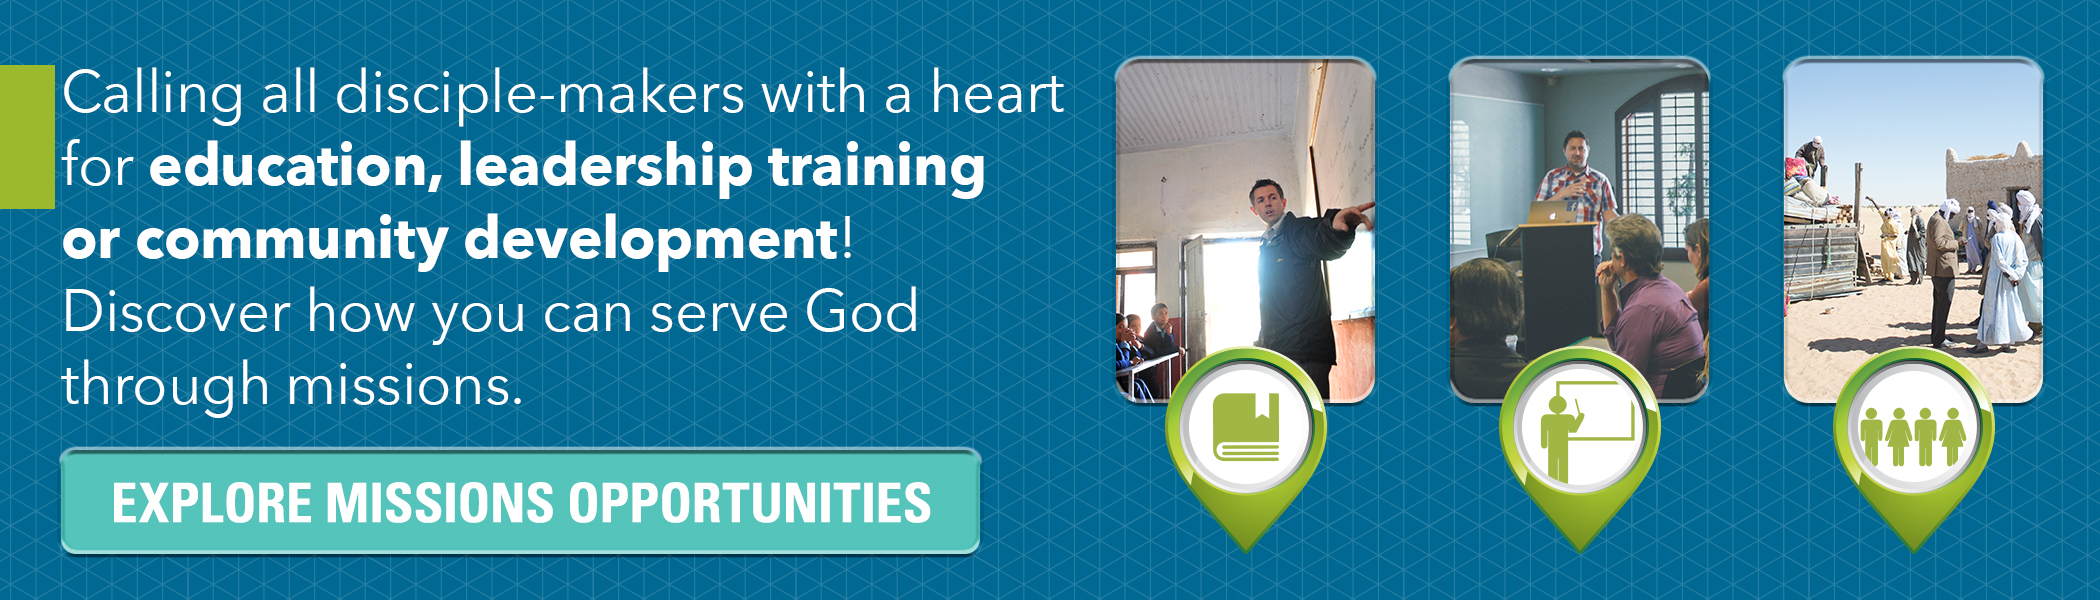 Calling all disciple-makers with a heart for education and leadership training! Click here to discover how you can serve God through missions.